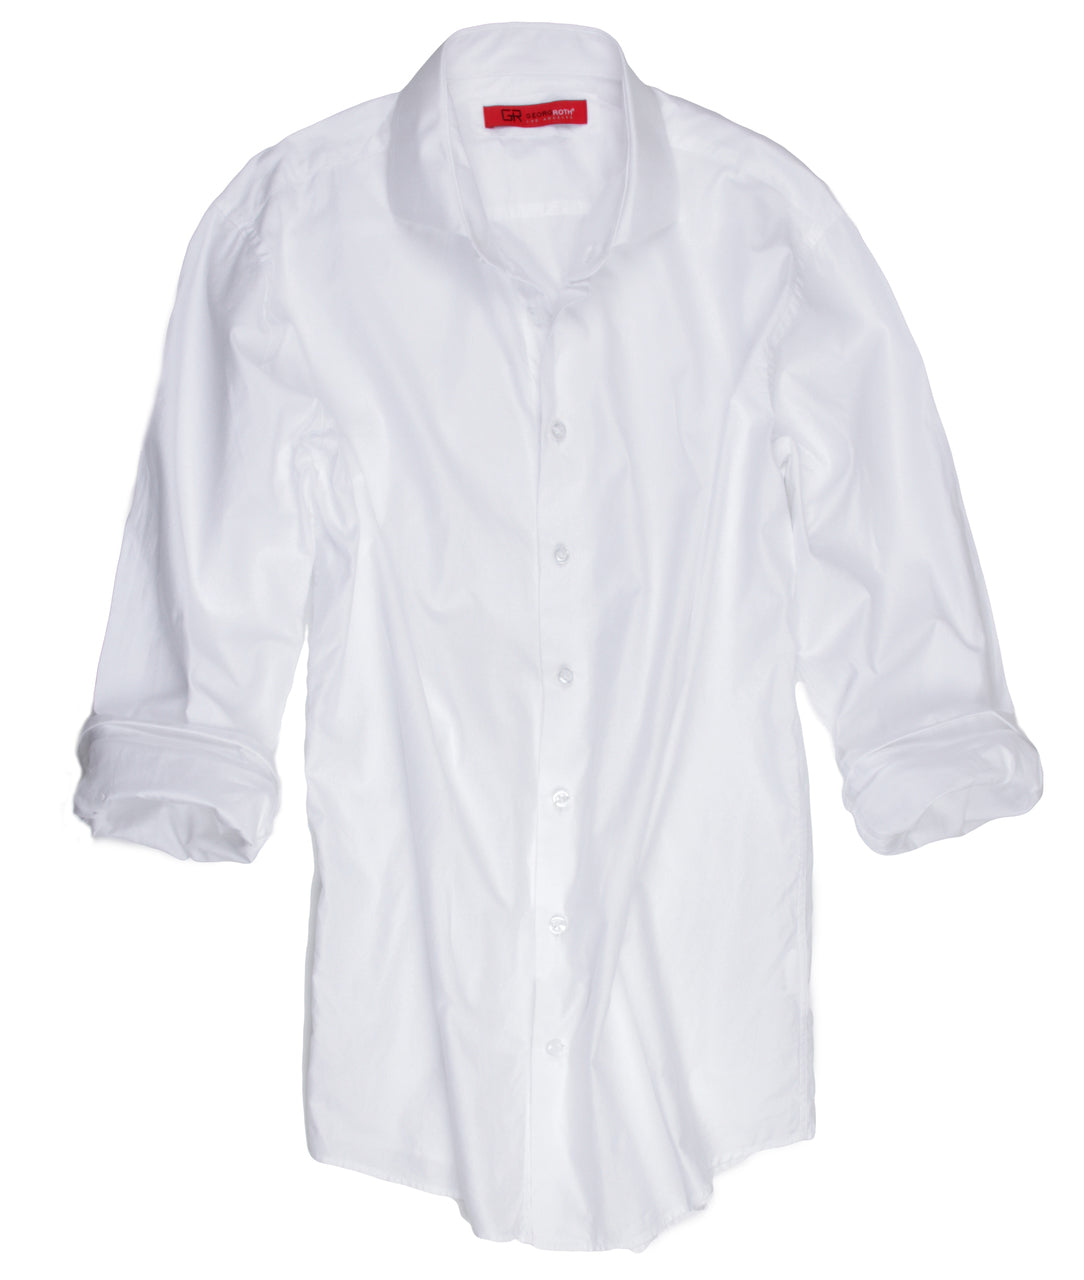 Wiesbaden-33006-020-Long-Sleeves-Cotton-Men Shirt,SPORT SHIRT,GEORG ROTH, | GentRow.com